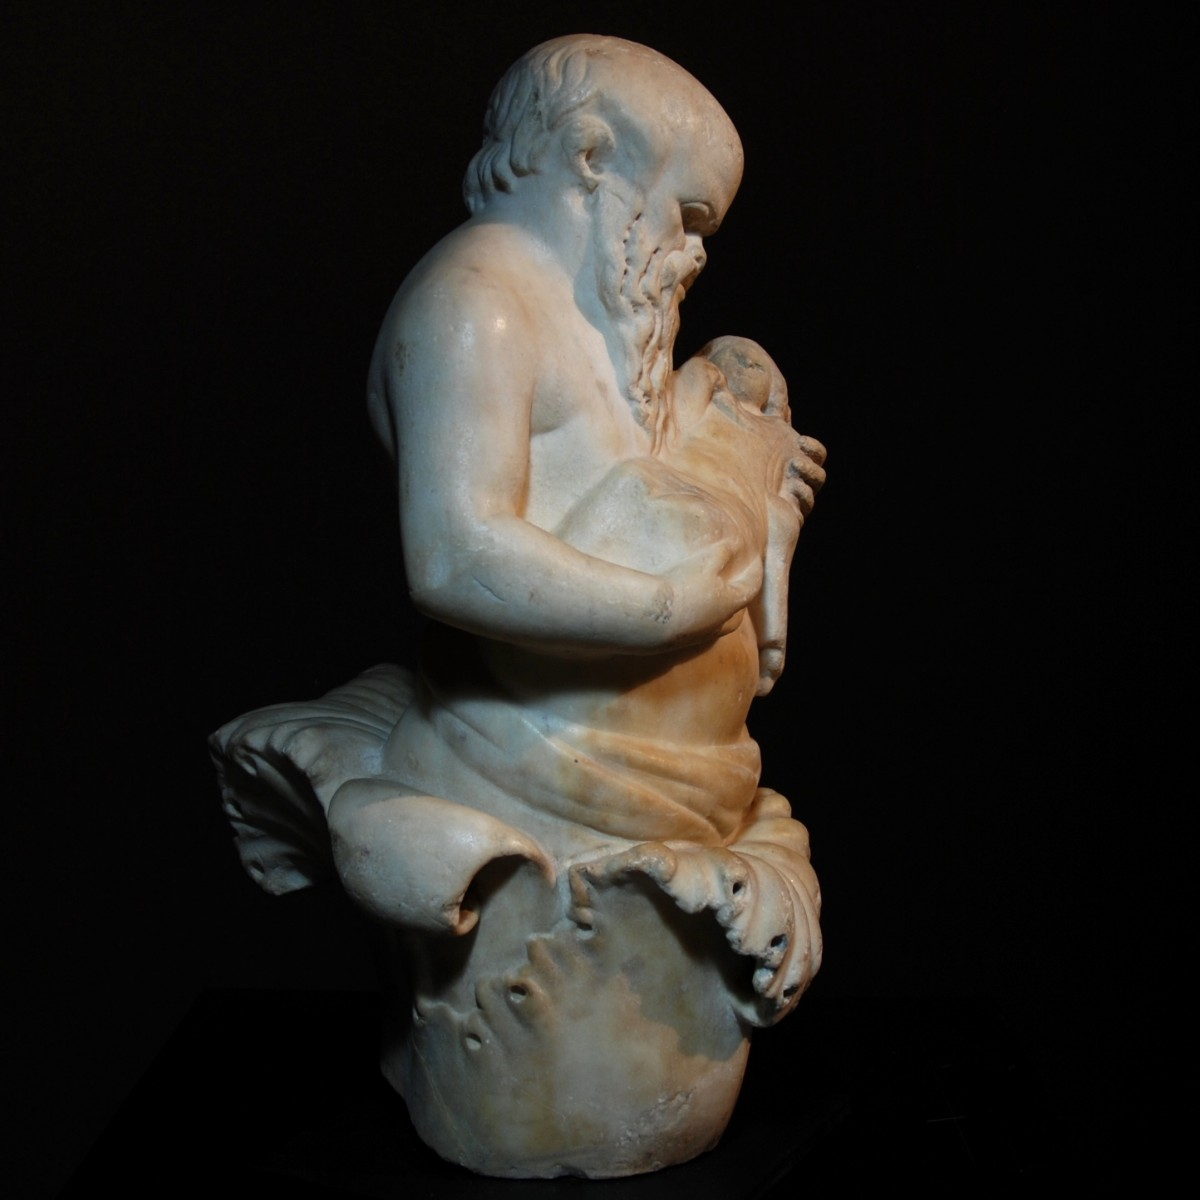 Roman marble statue of Silenus with Bacchus right